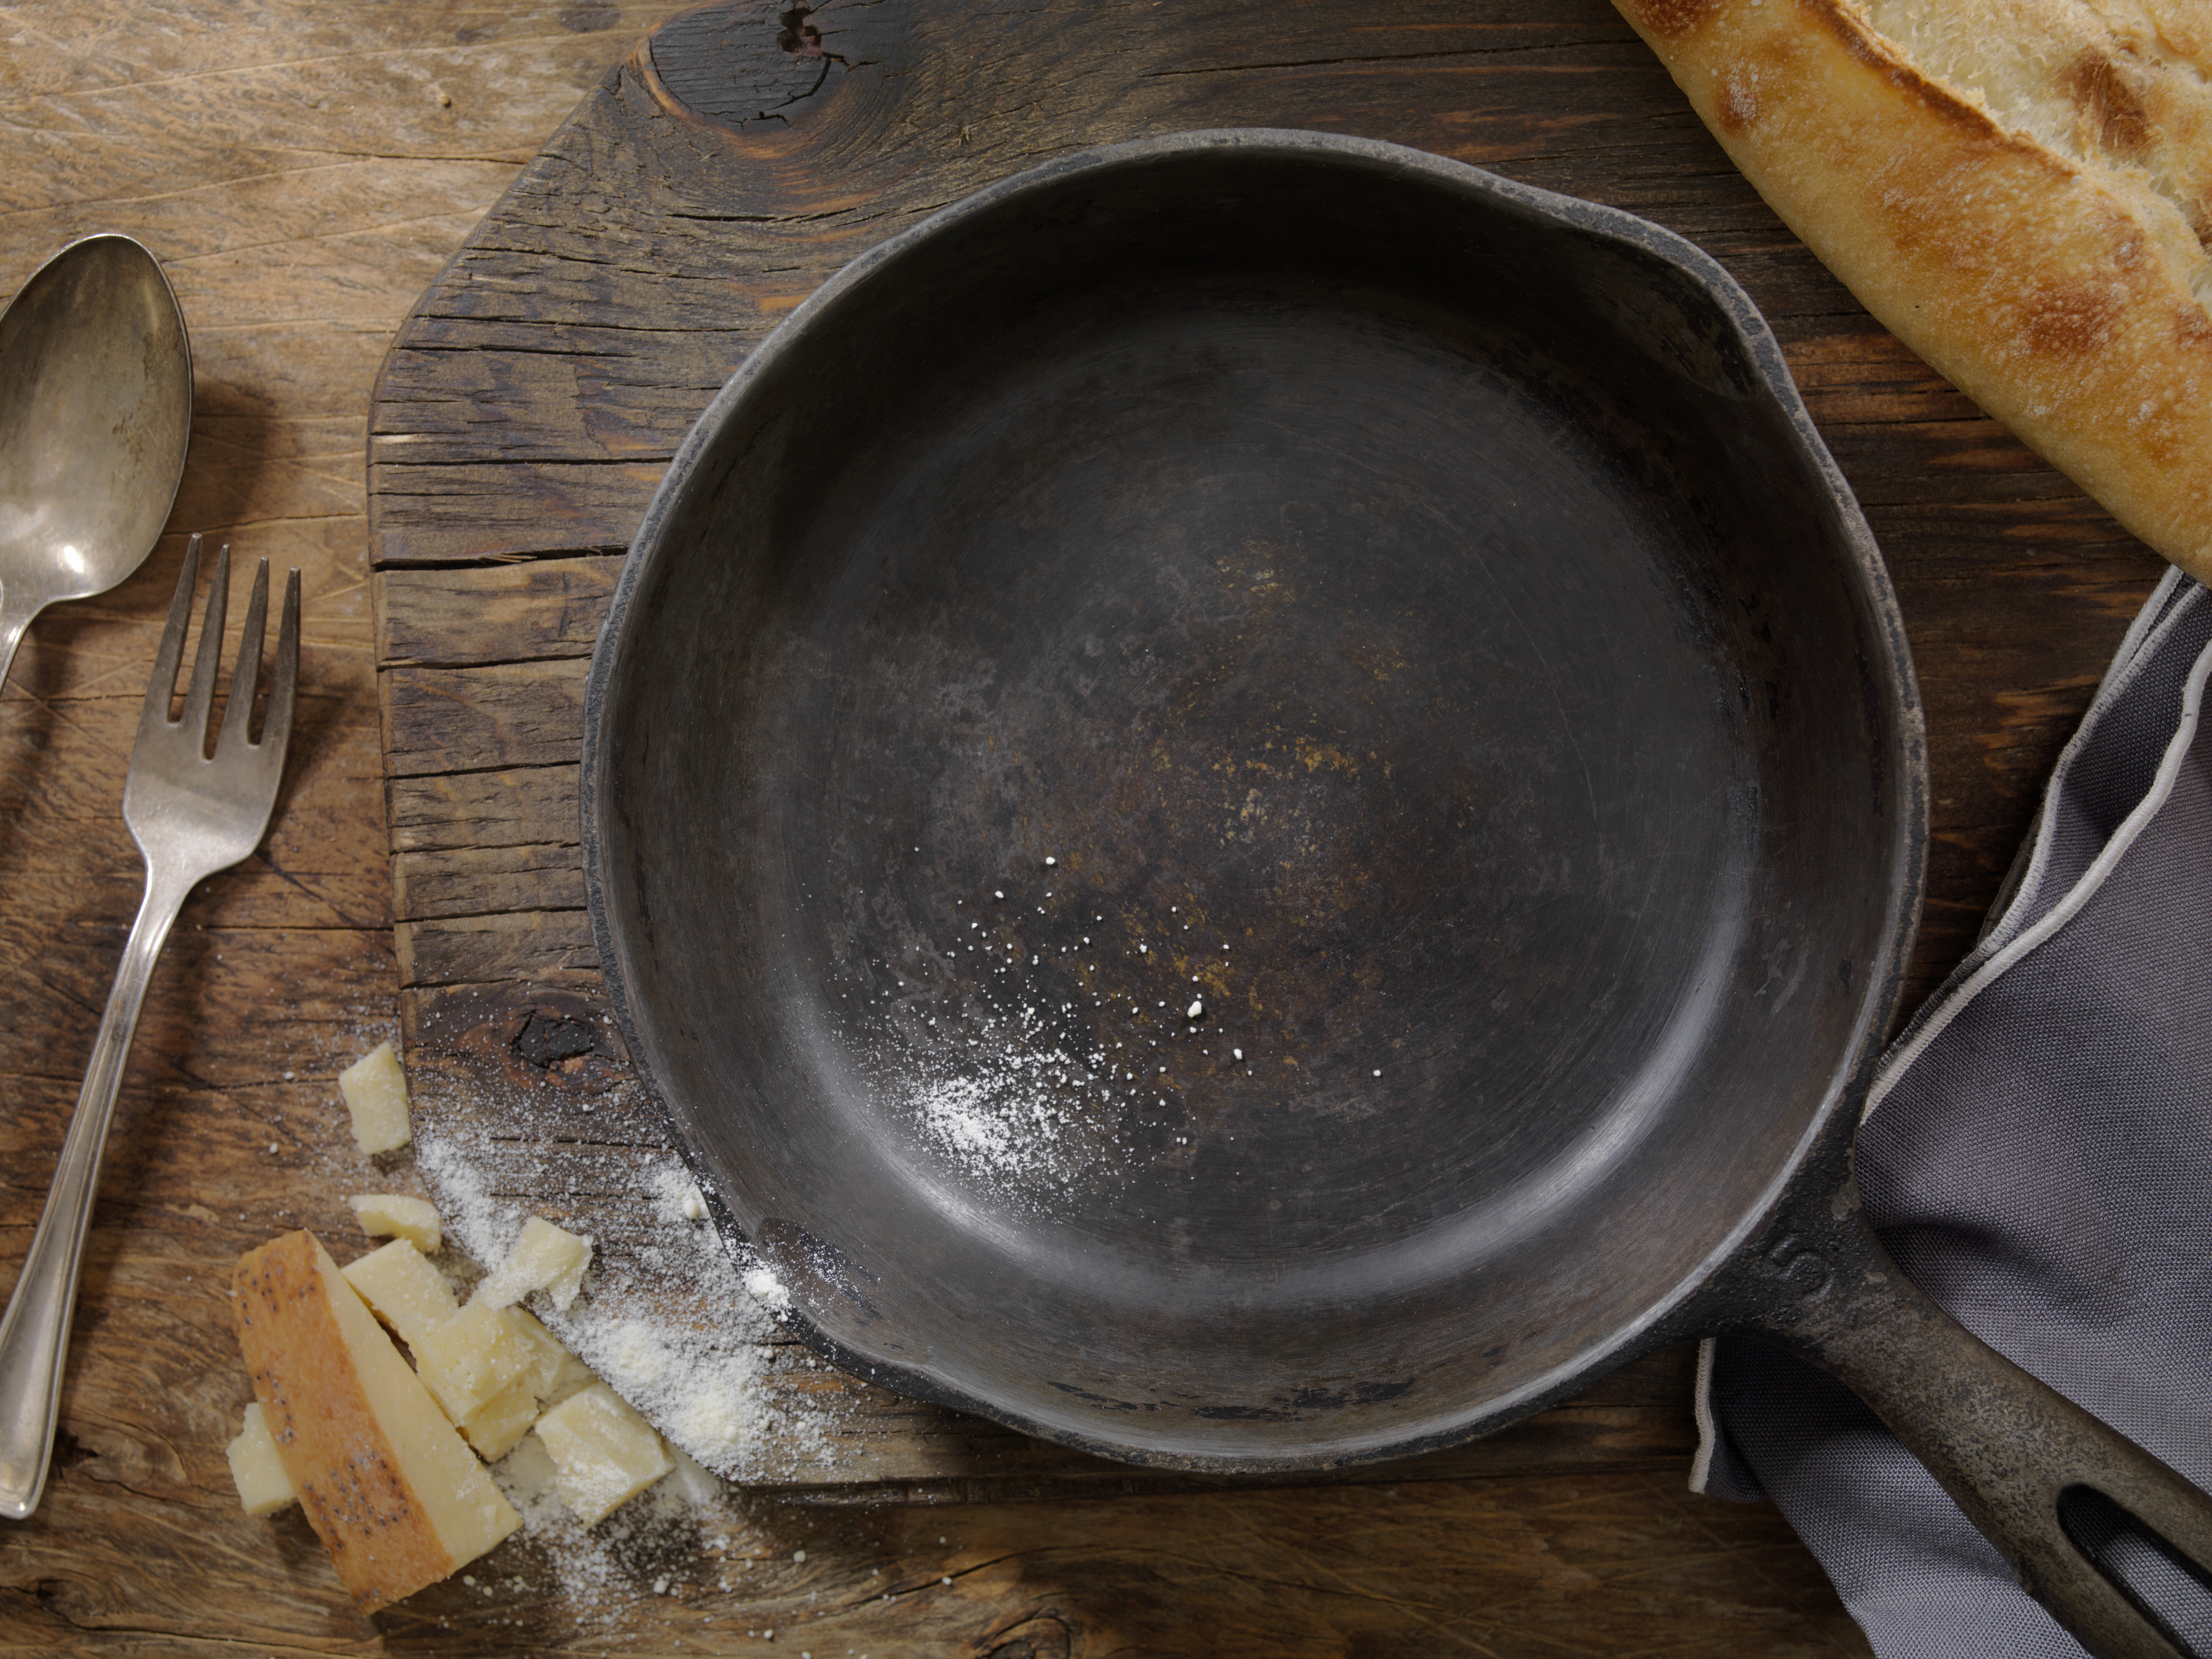 Anodized Cookware Dangers | LEAFtv